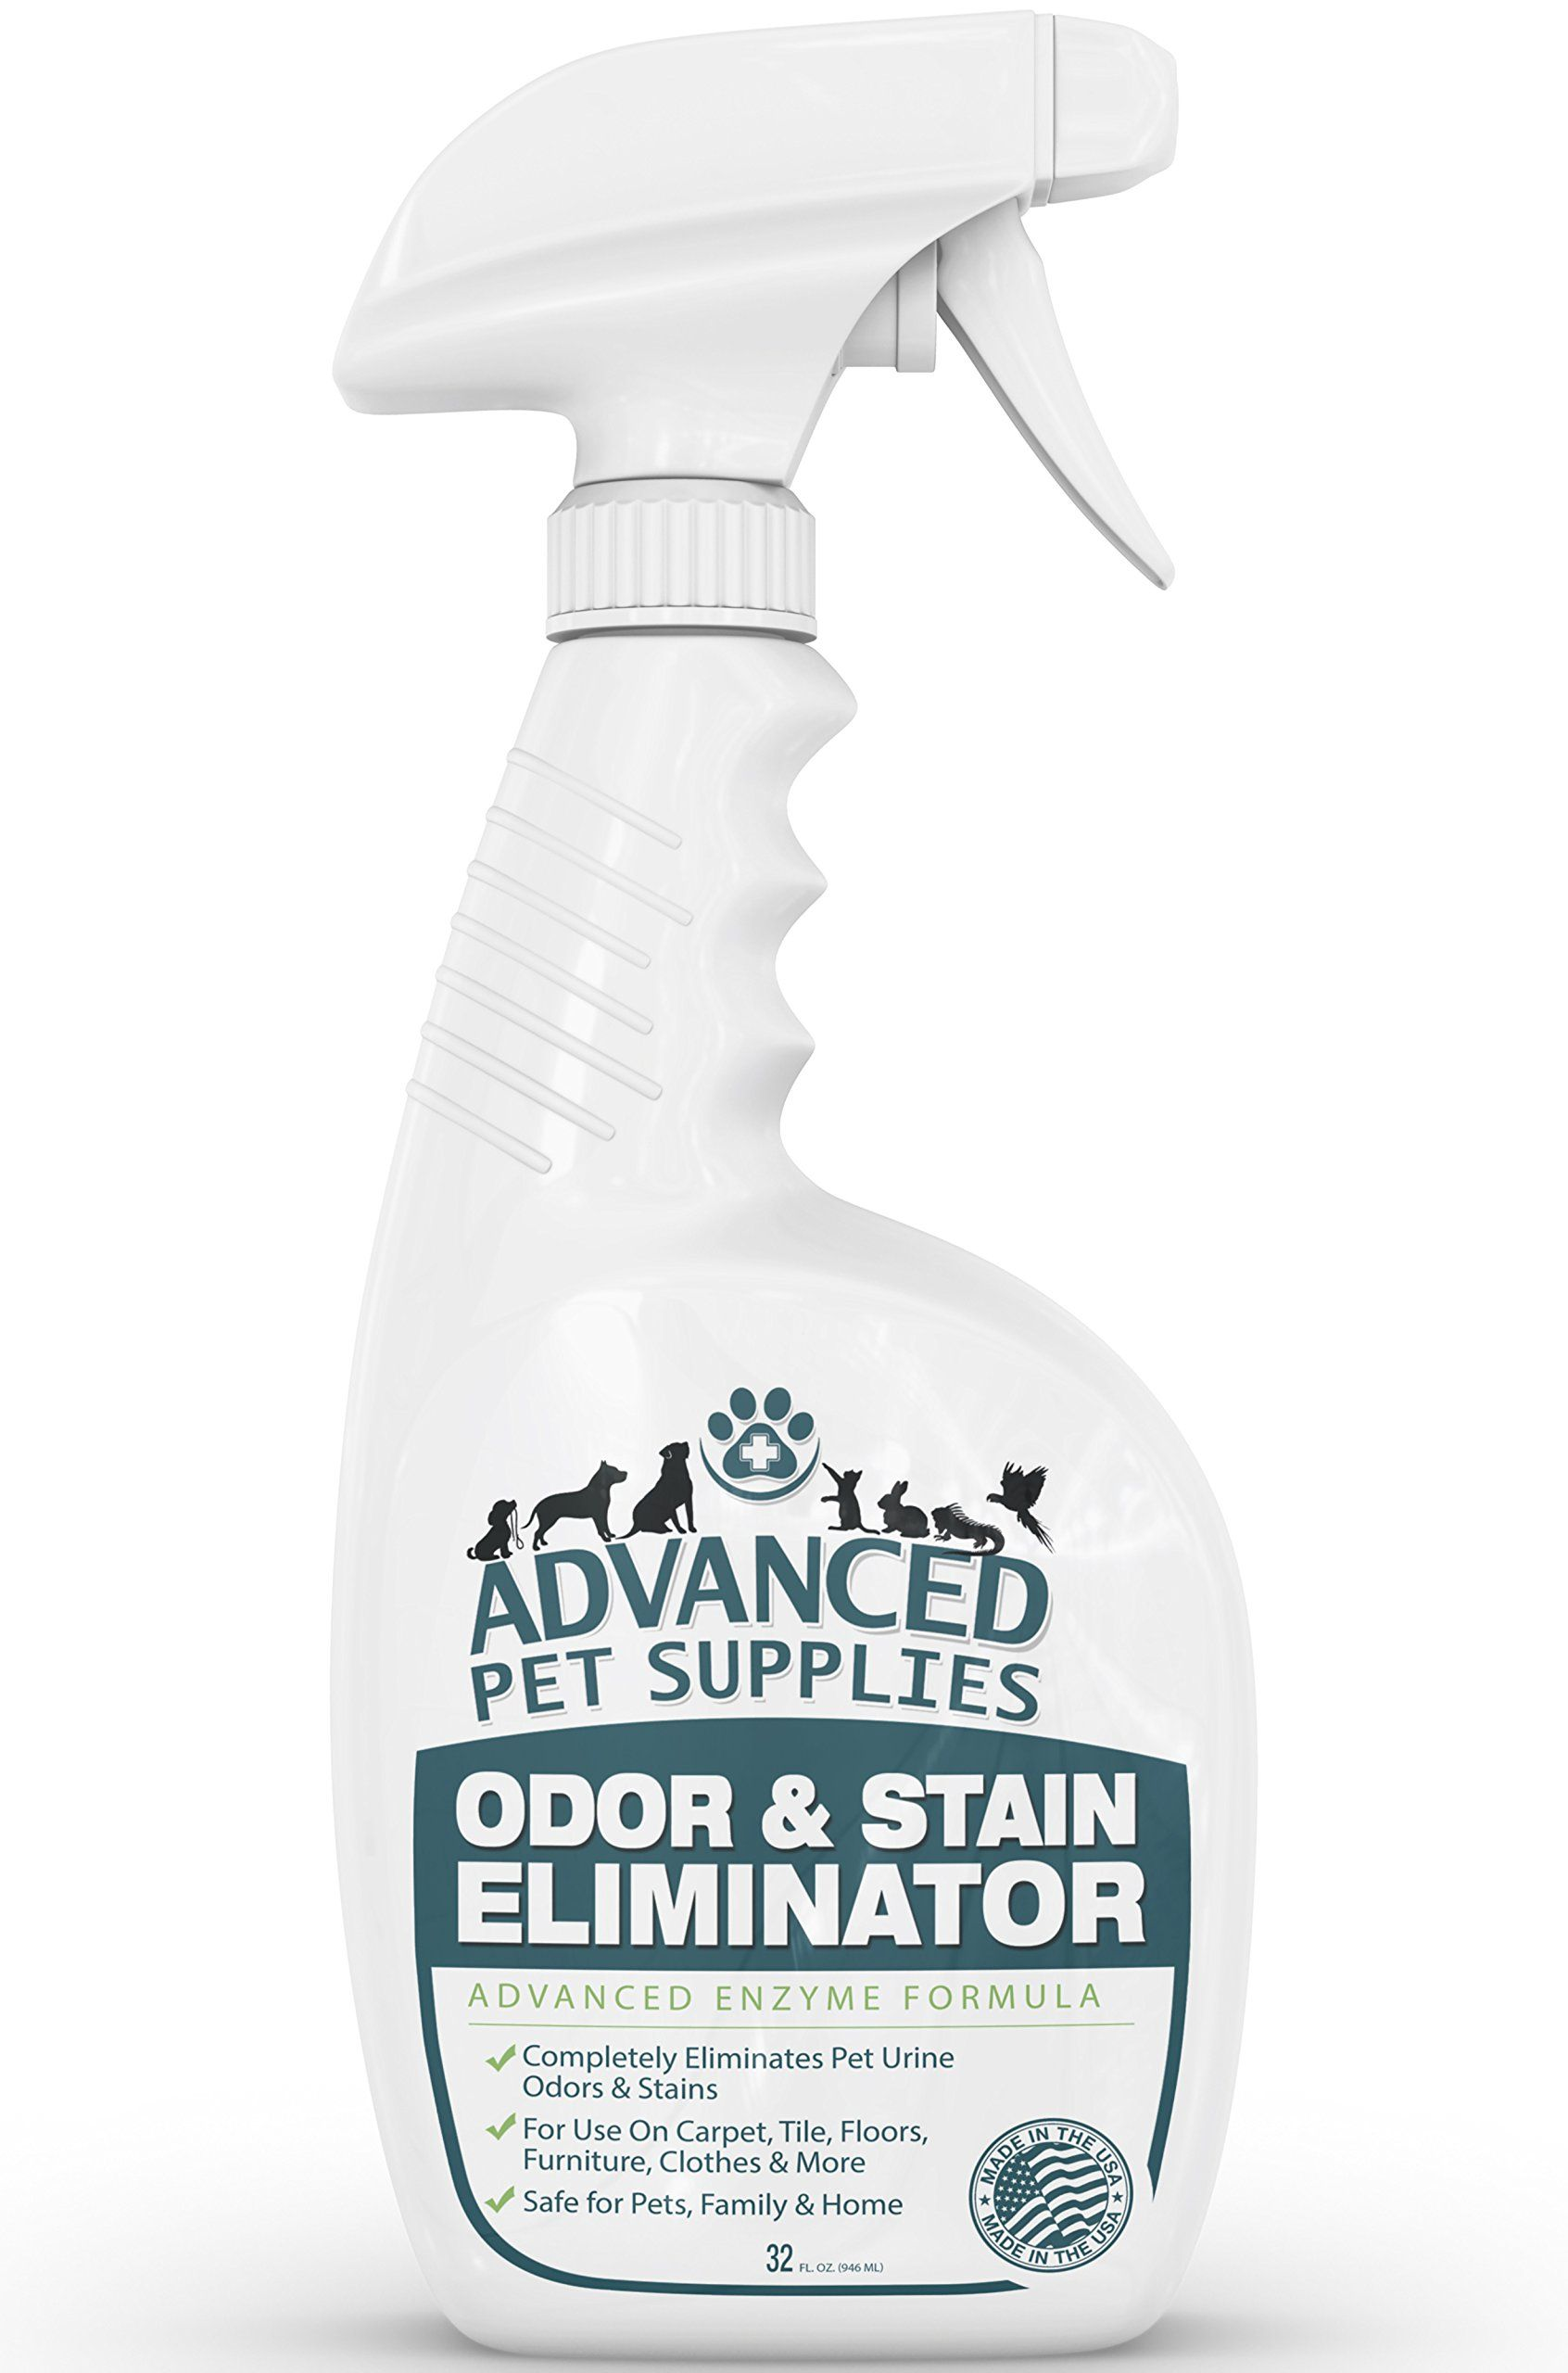 Advanced Pet Supplies Odor Eliminator and Stain Remover Carpet Cleaner with Odor Control Technology Cat Urine and Dog Pee Neutralizer Spray Professional ...